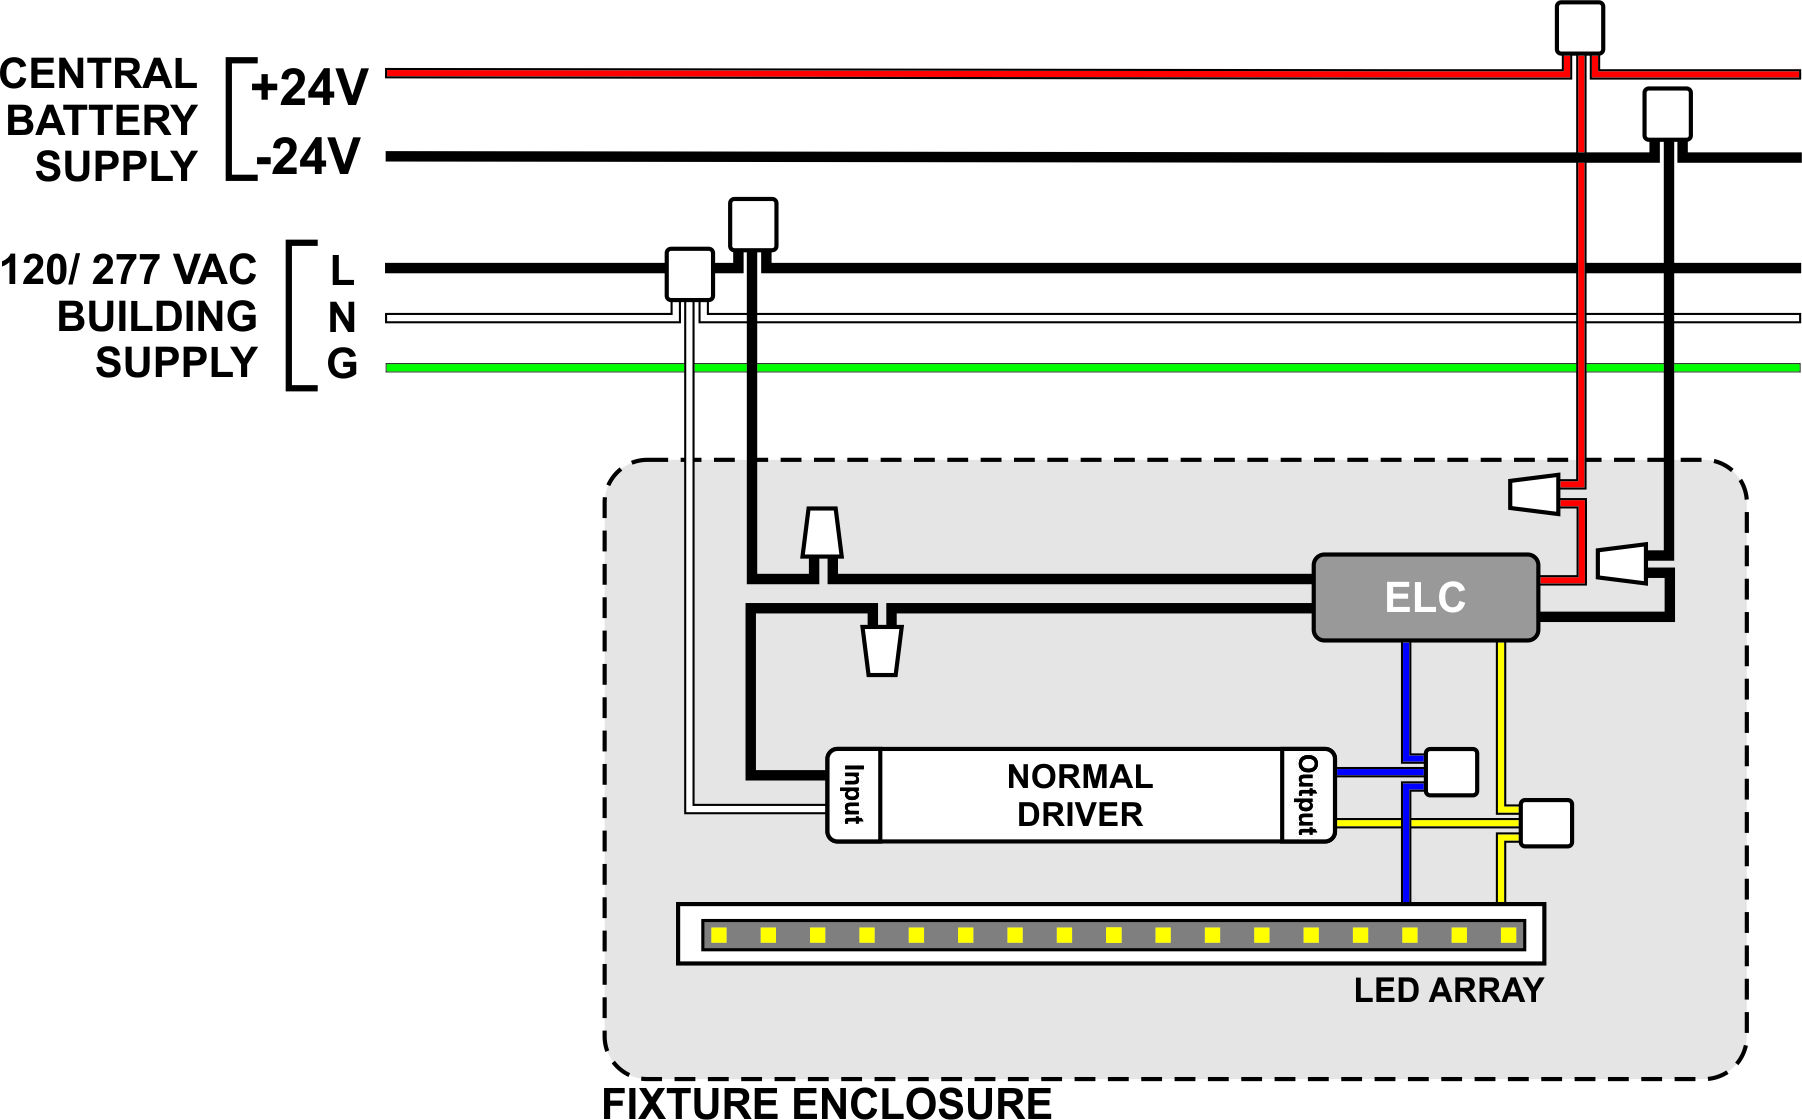 Emergency Lighting Controller - Signtex Lighting Inc. on class 1 division diagram, conduit connection diagram, ul 924 bypass relay, ul 1008 transfer switch wiring, sign emergency light installation diagram, dirt and plant diagram, ul 924 transfer relay,